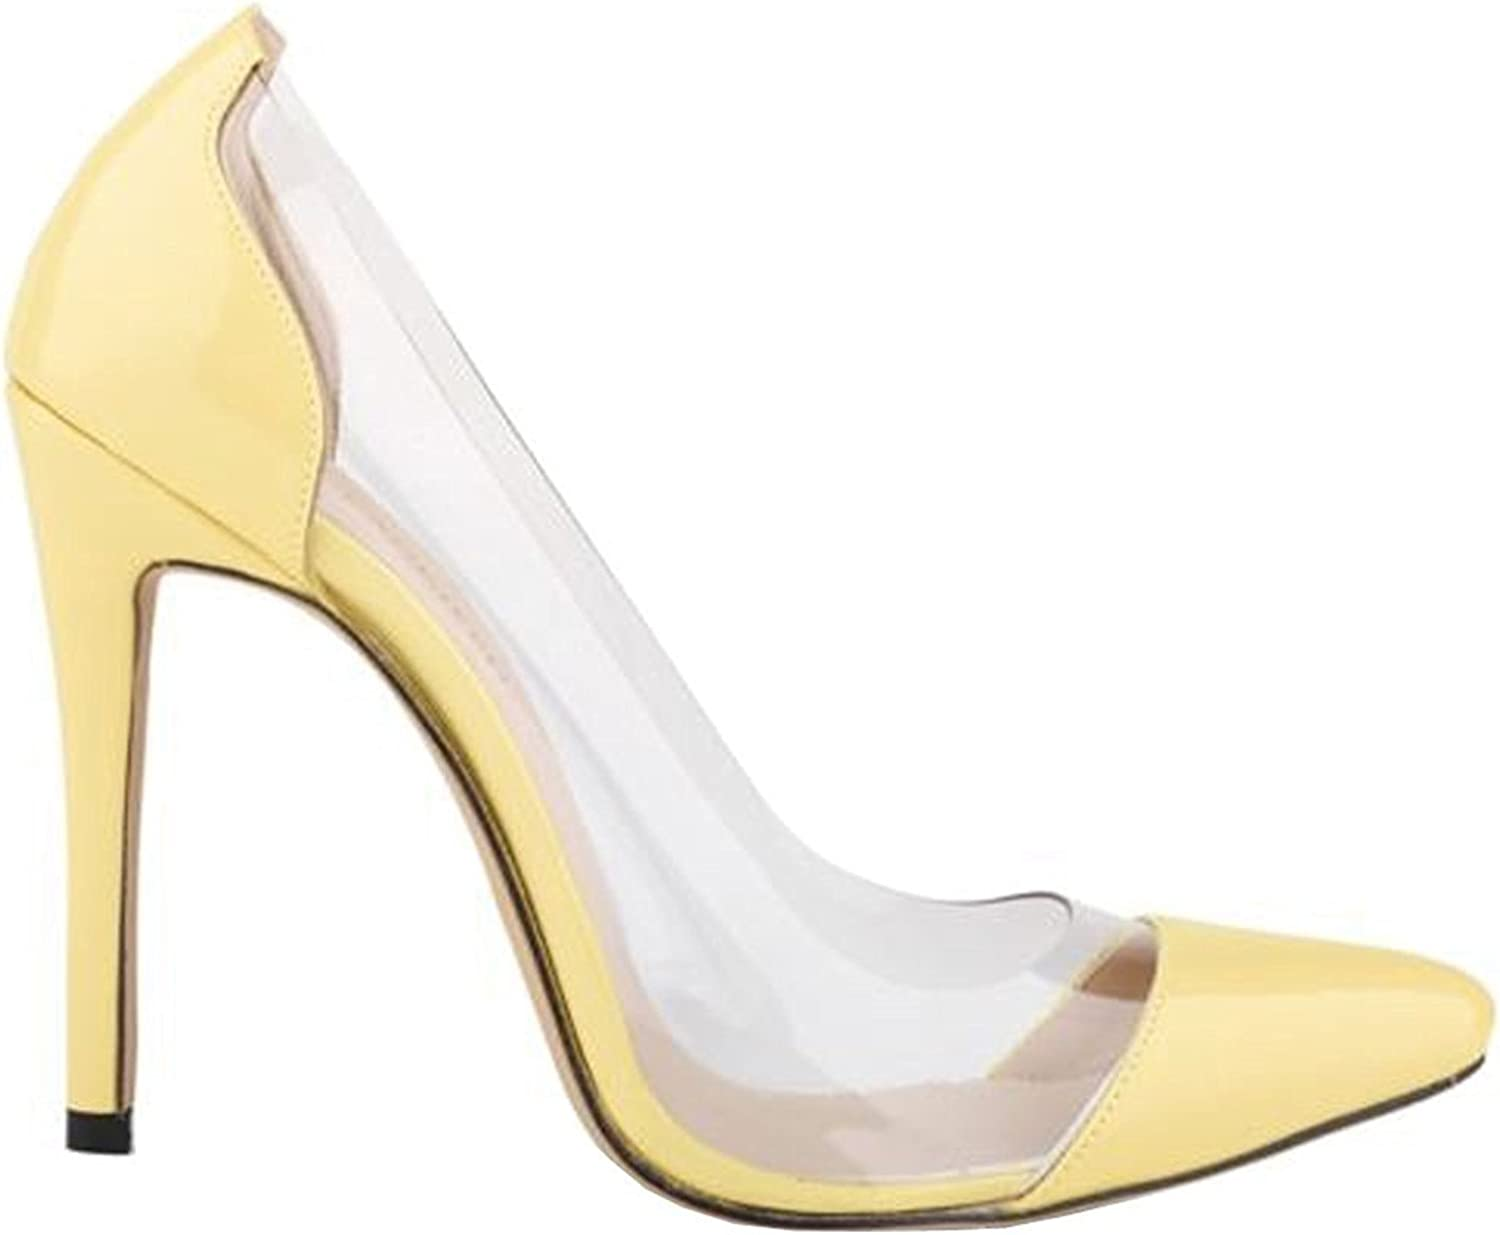 Oppicong Womens shoes Closed Toe High Heels Women's Pointed Slender Leather Pumps C-yellow9.5 B(M) US